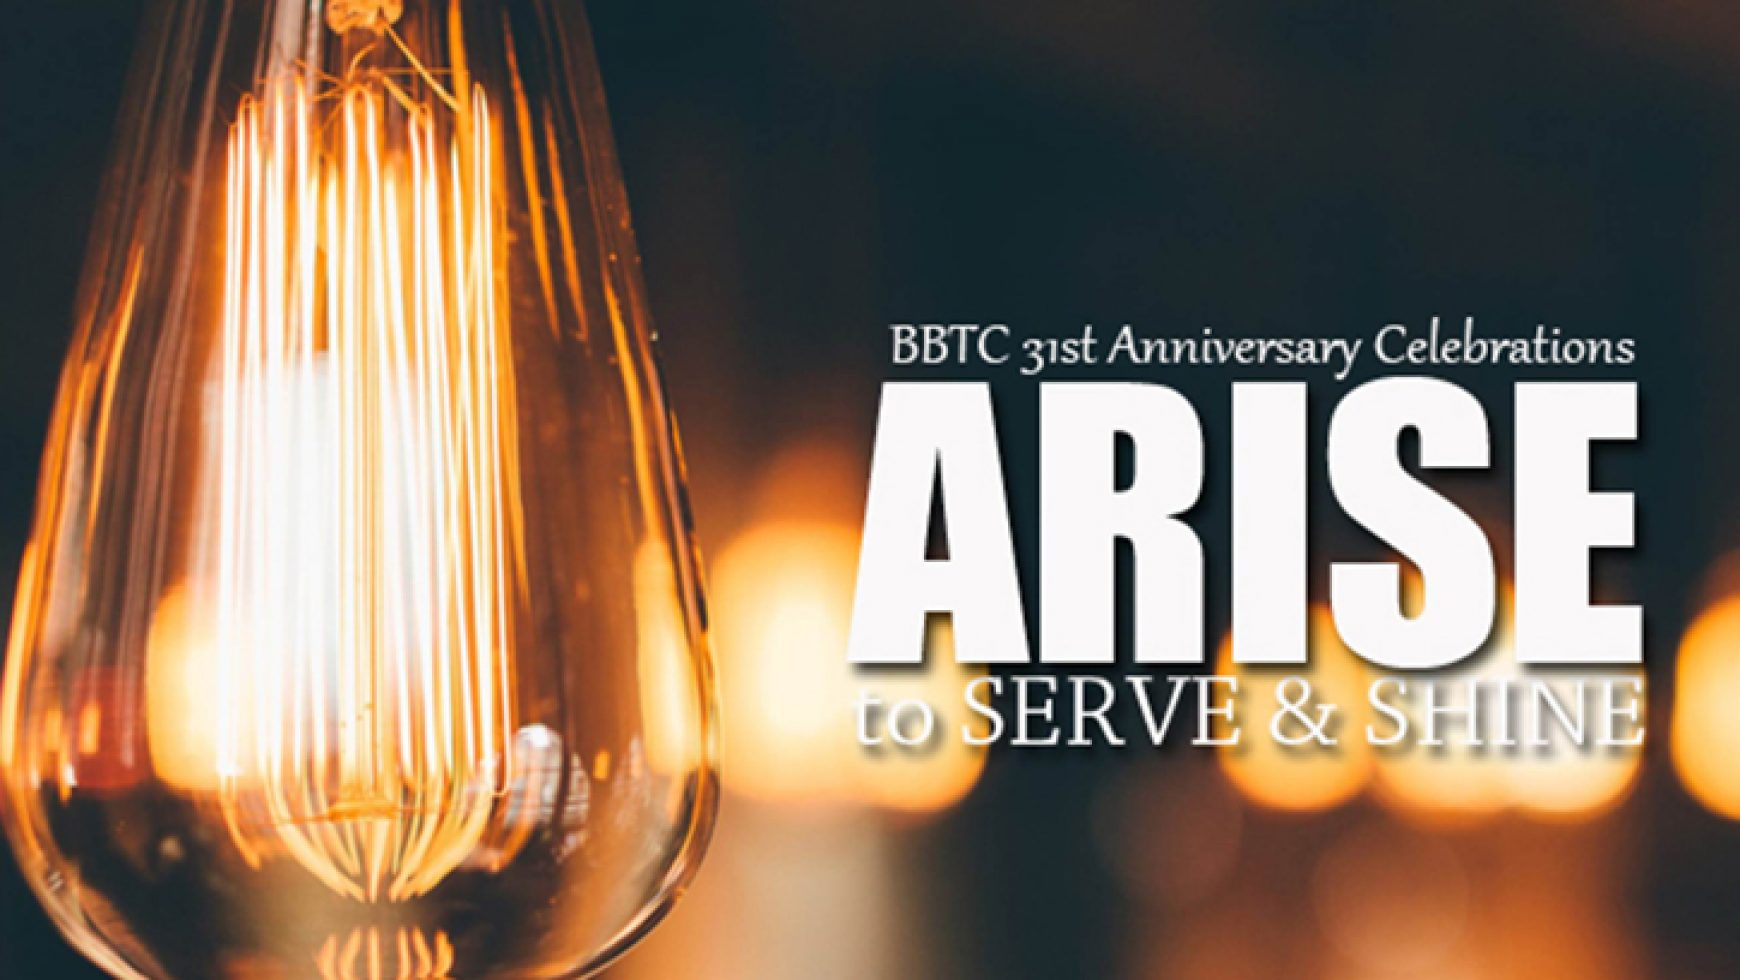 Arise to Serve and Shine